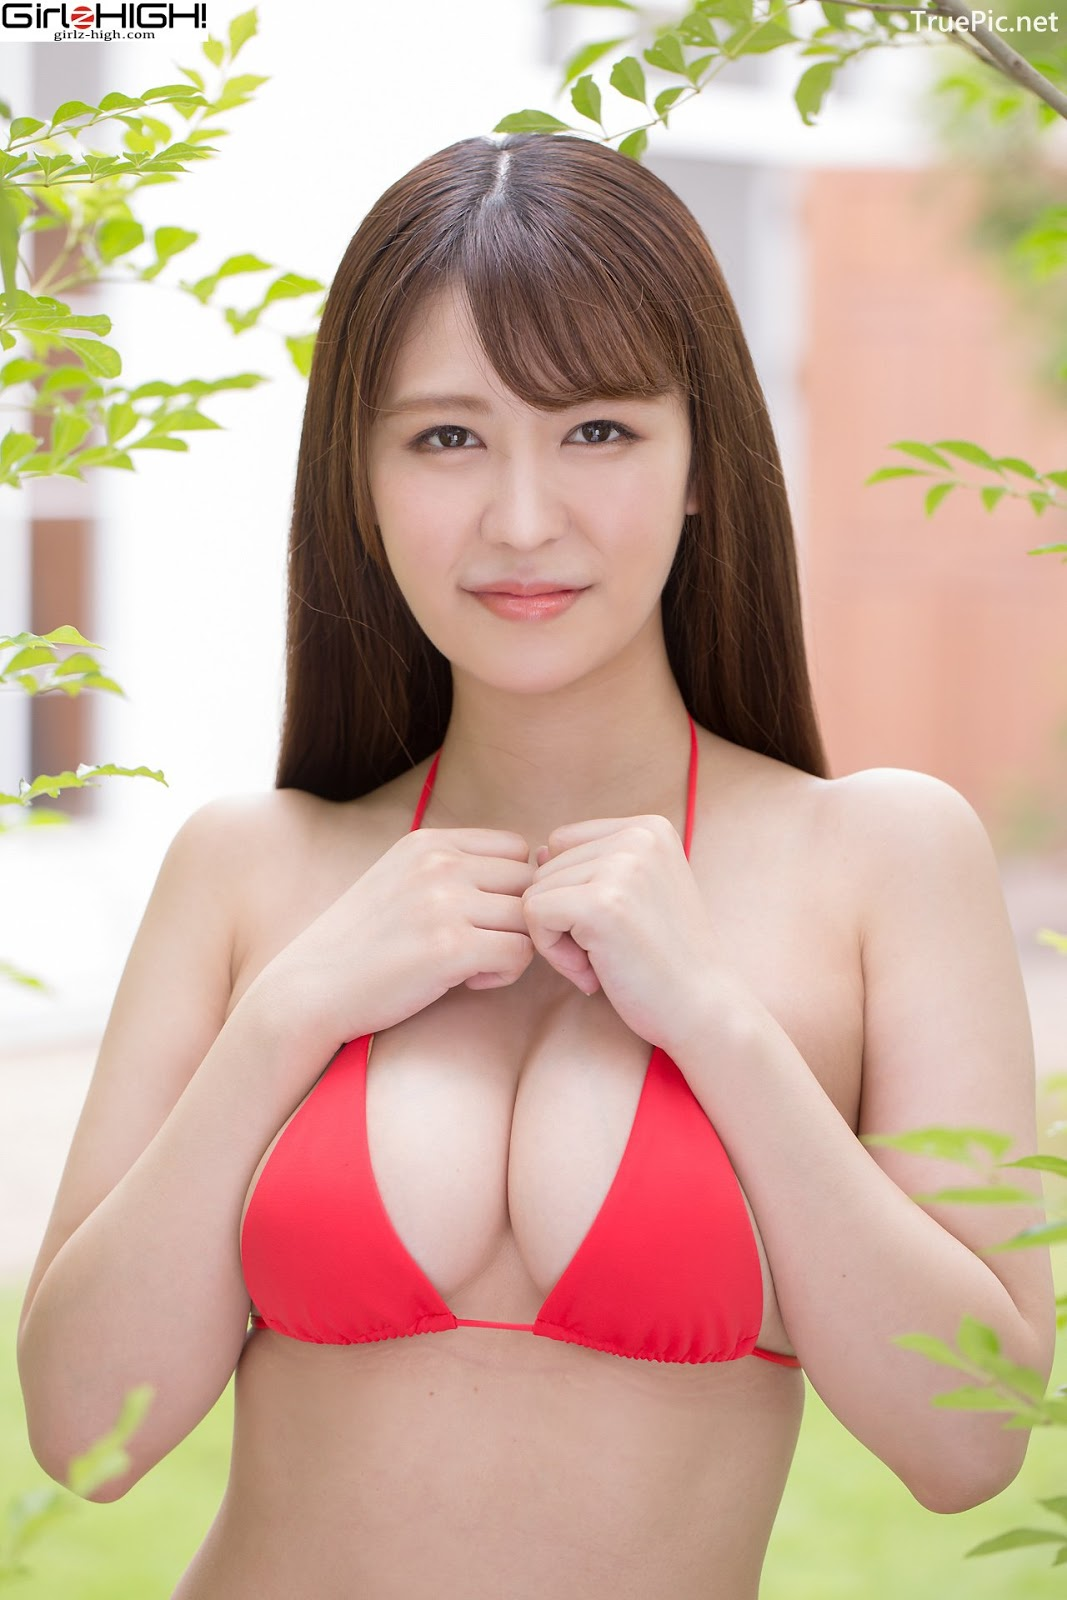 Image Japanese Gravure Idol - Kasumi Yoshinaga - Girlz High Album - TruePic.net - Picture-9